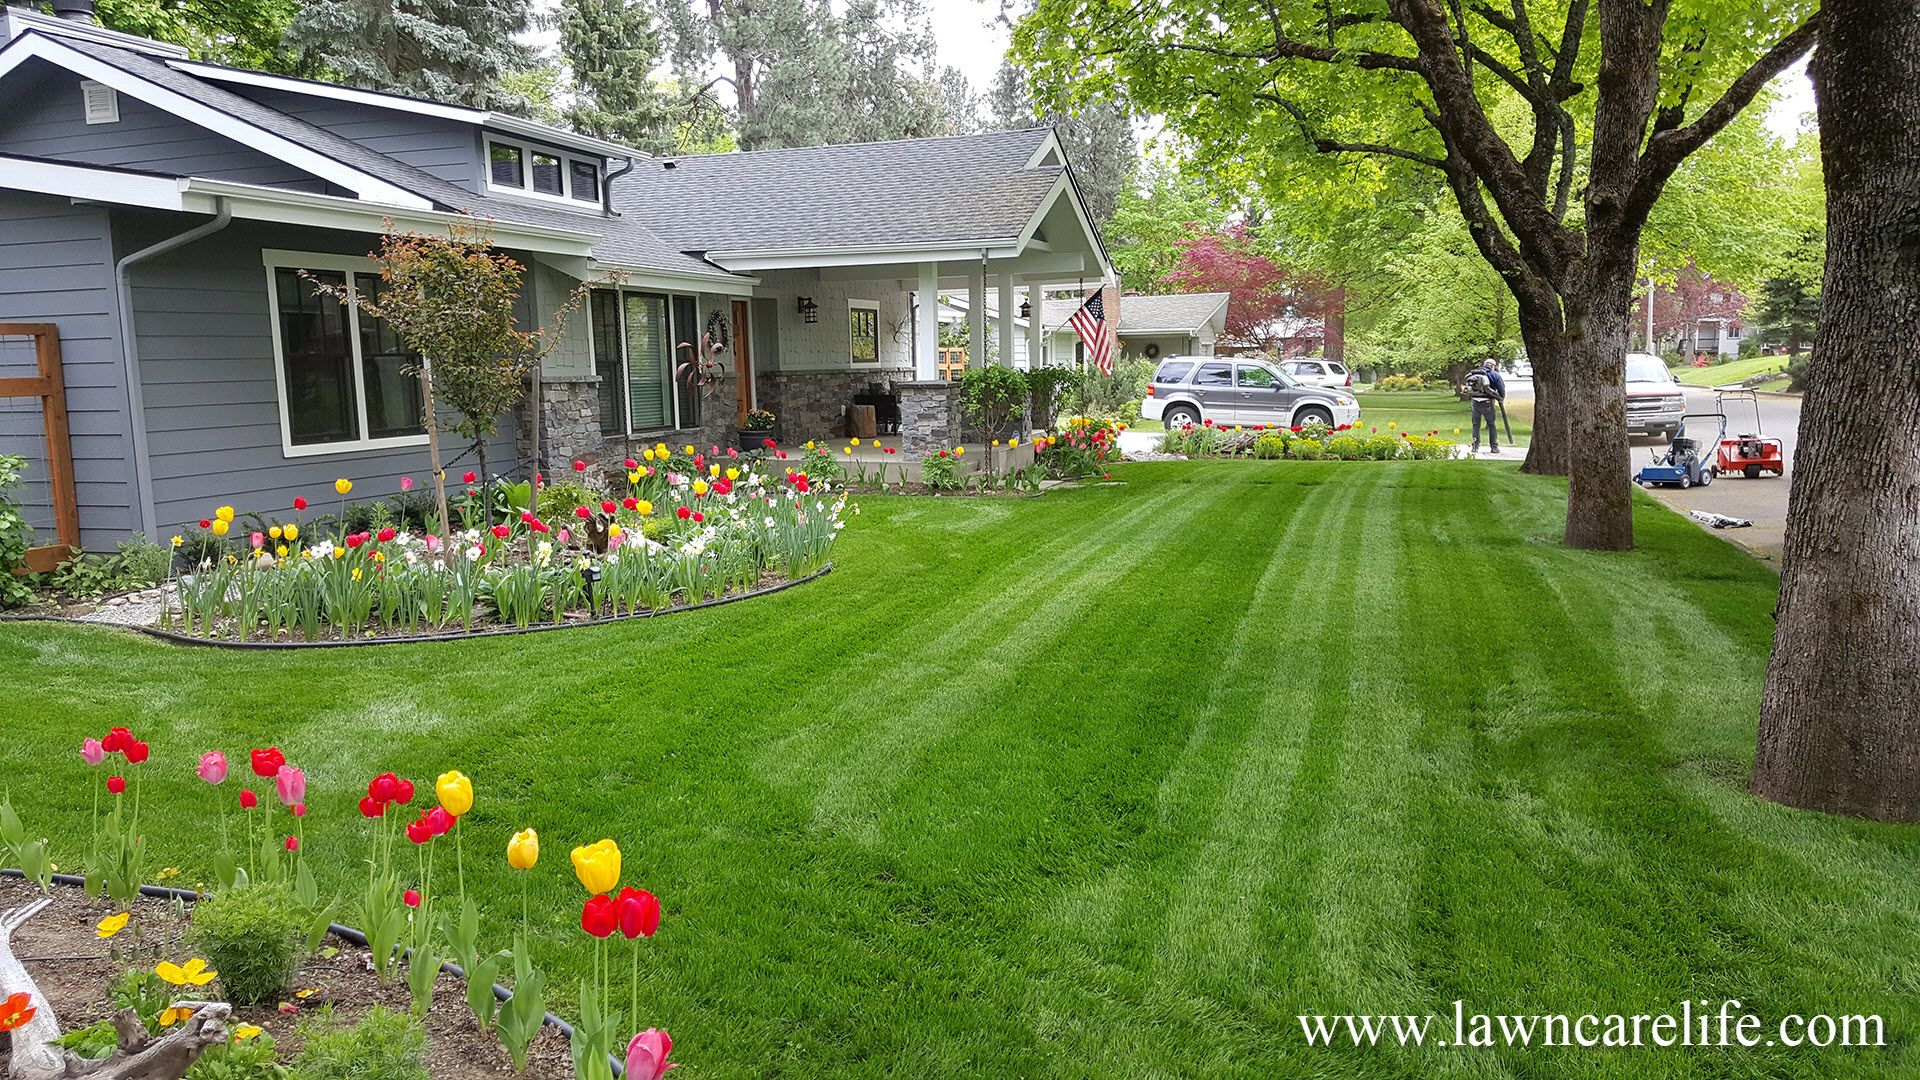 Jason Creel Having A Lot Of Experience In Growing Lawn